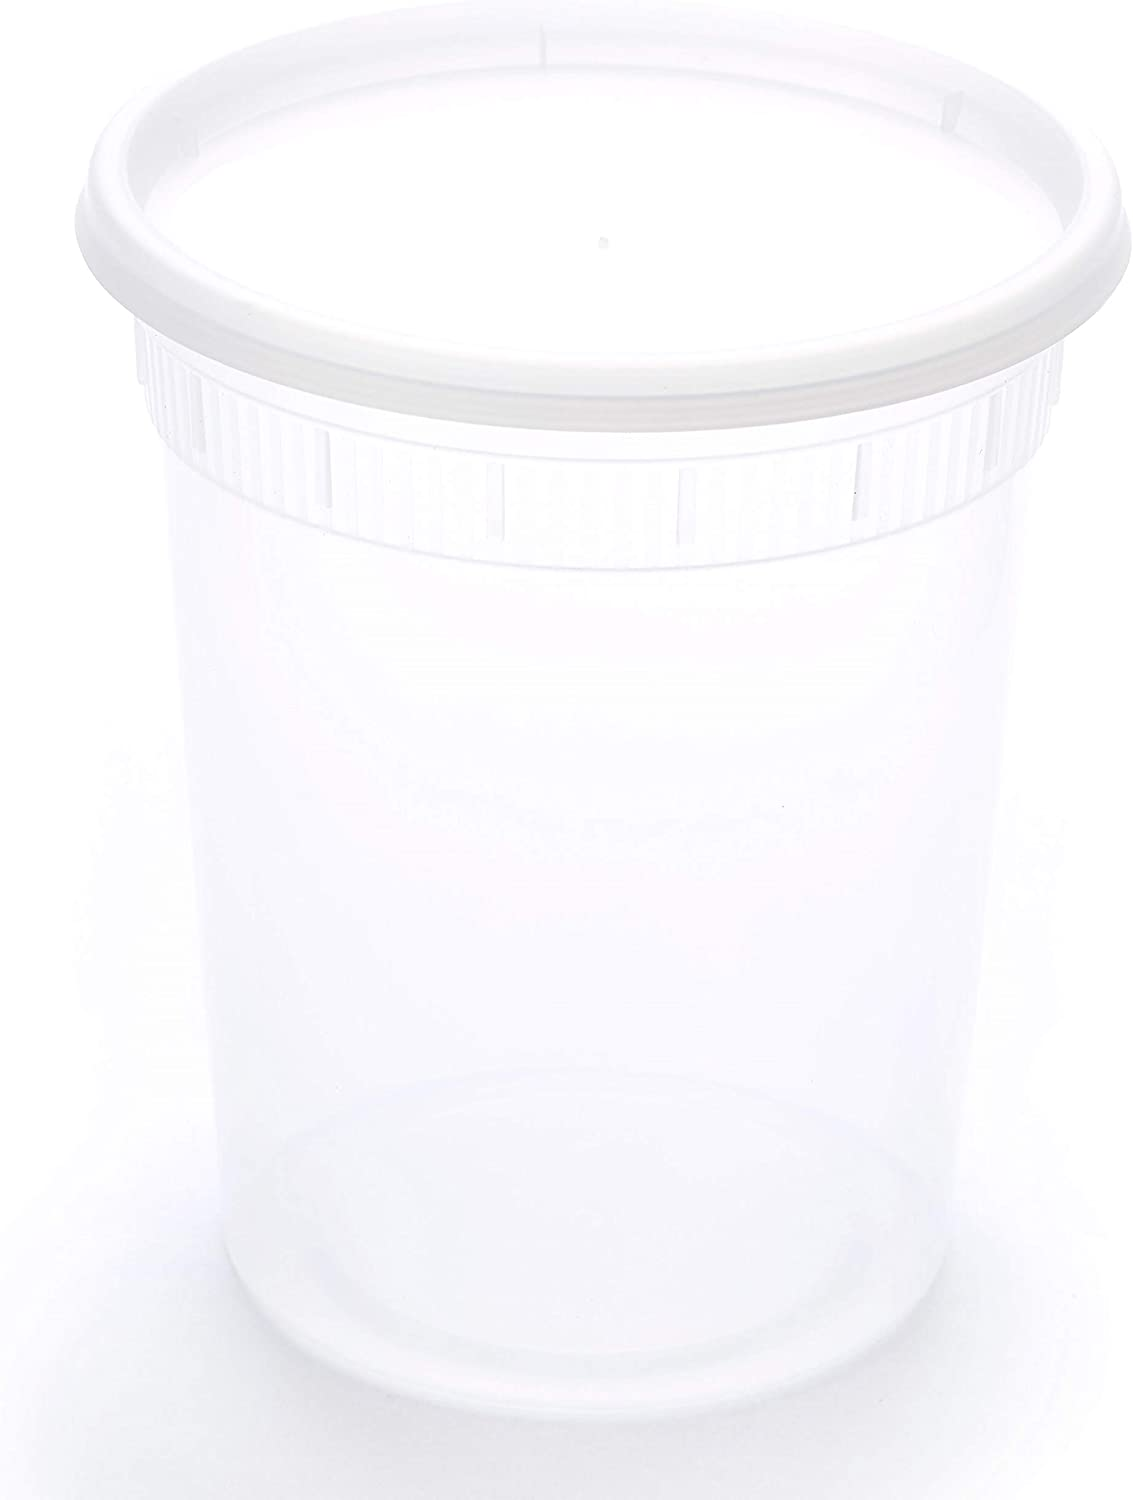 Scotty's 24 Pack of 32 oz Deli Plastic Food Storage Containers with Lids - 24 containers and 24 lids - Microwaveable - Restaurant Quality